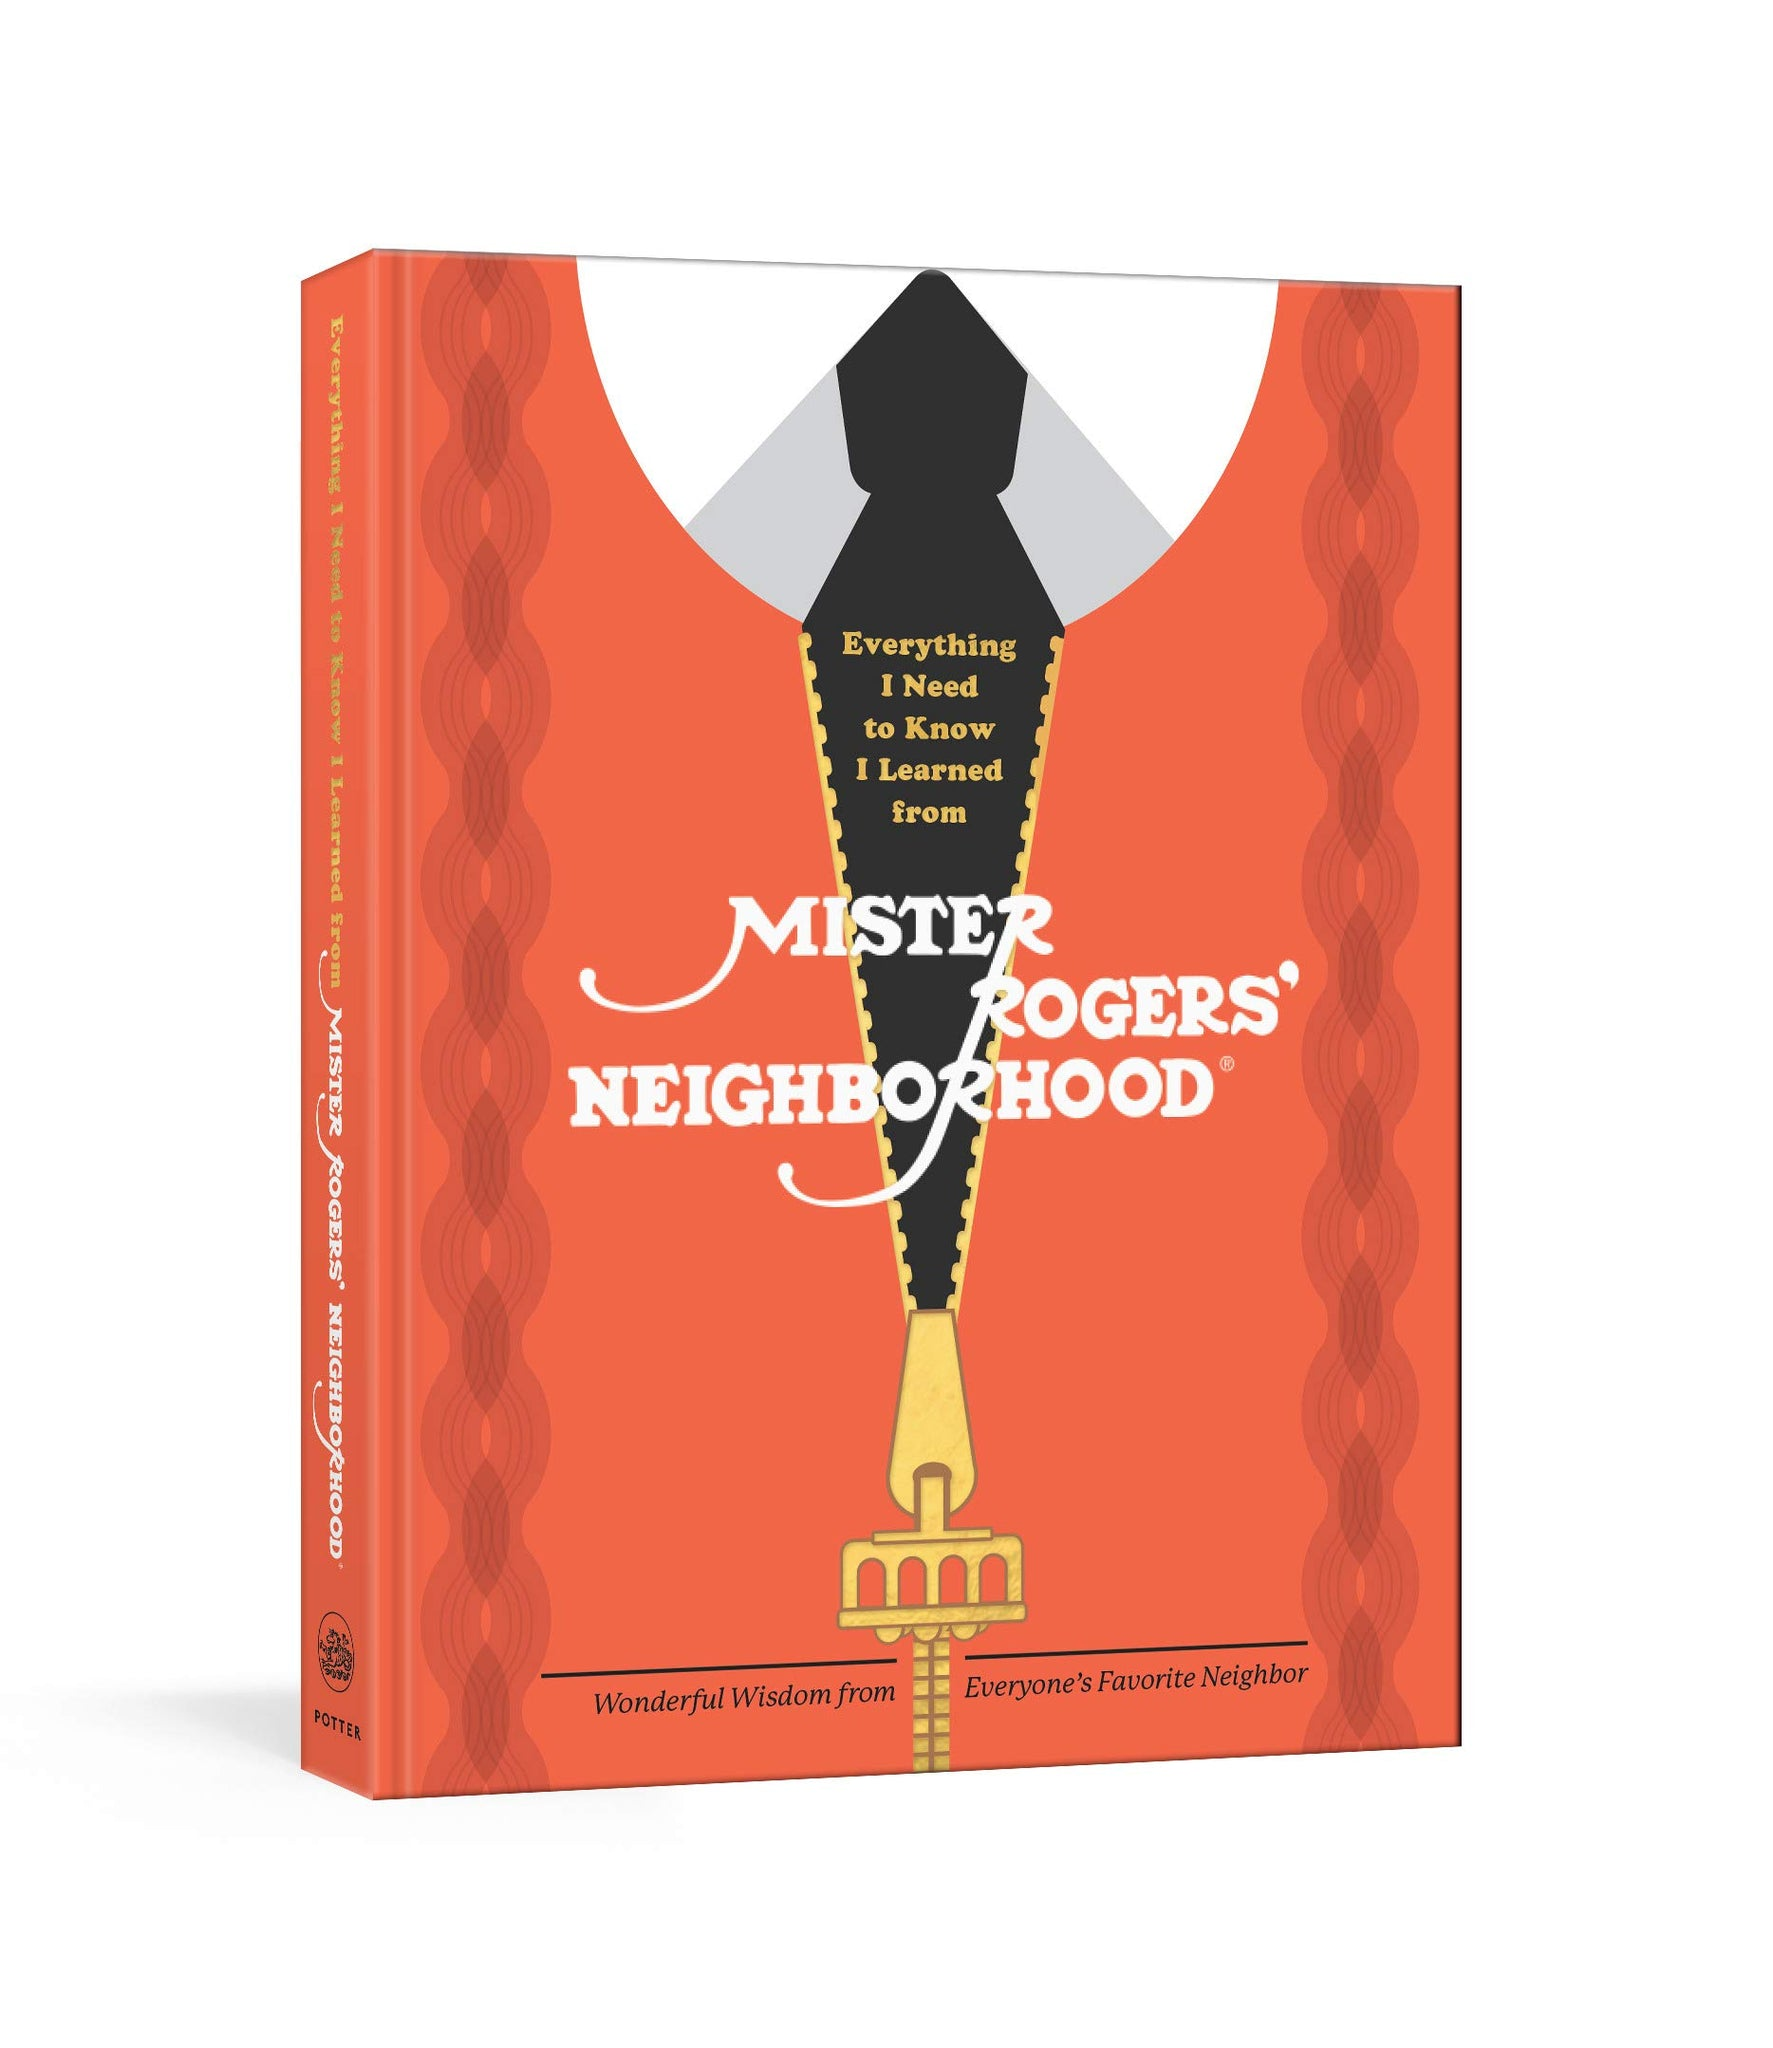 Everything I Need to Know I Learned from Mister Rogers' Neighborhood Book